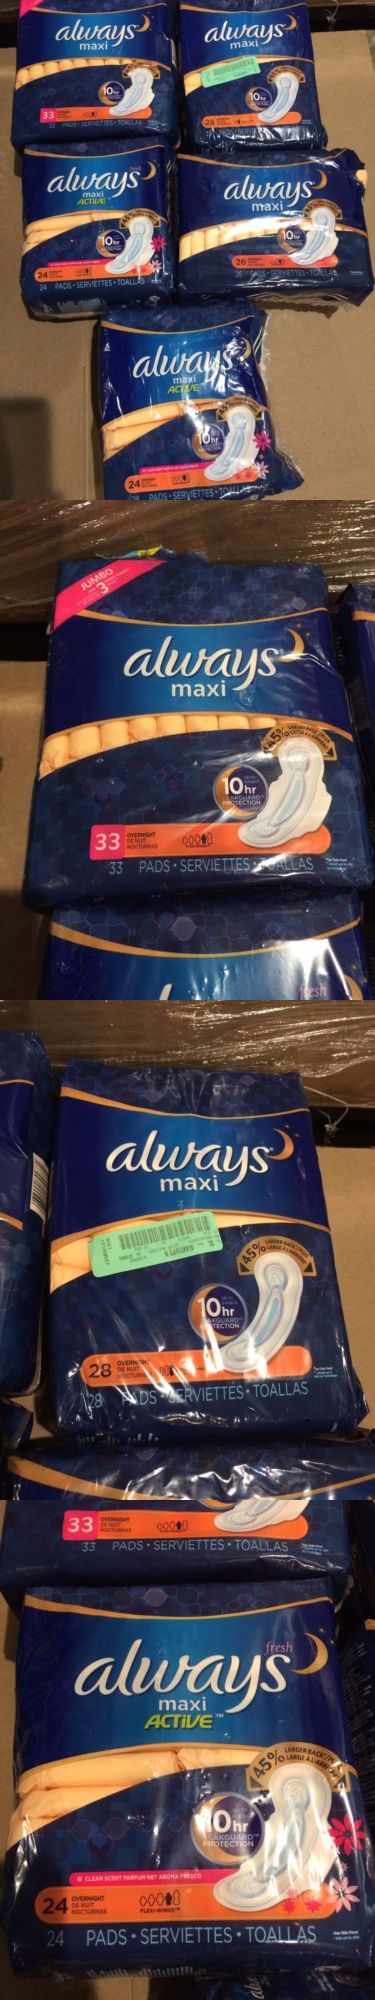 Other Feminine Hygiene: Always Maxi Pads Lot Of 5 Pkgs Overnight Pads-Scented And Unscented -> BUY IT NOW ONLY: $36.99 on eBay!